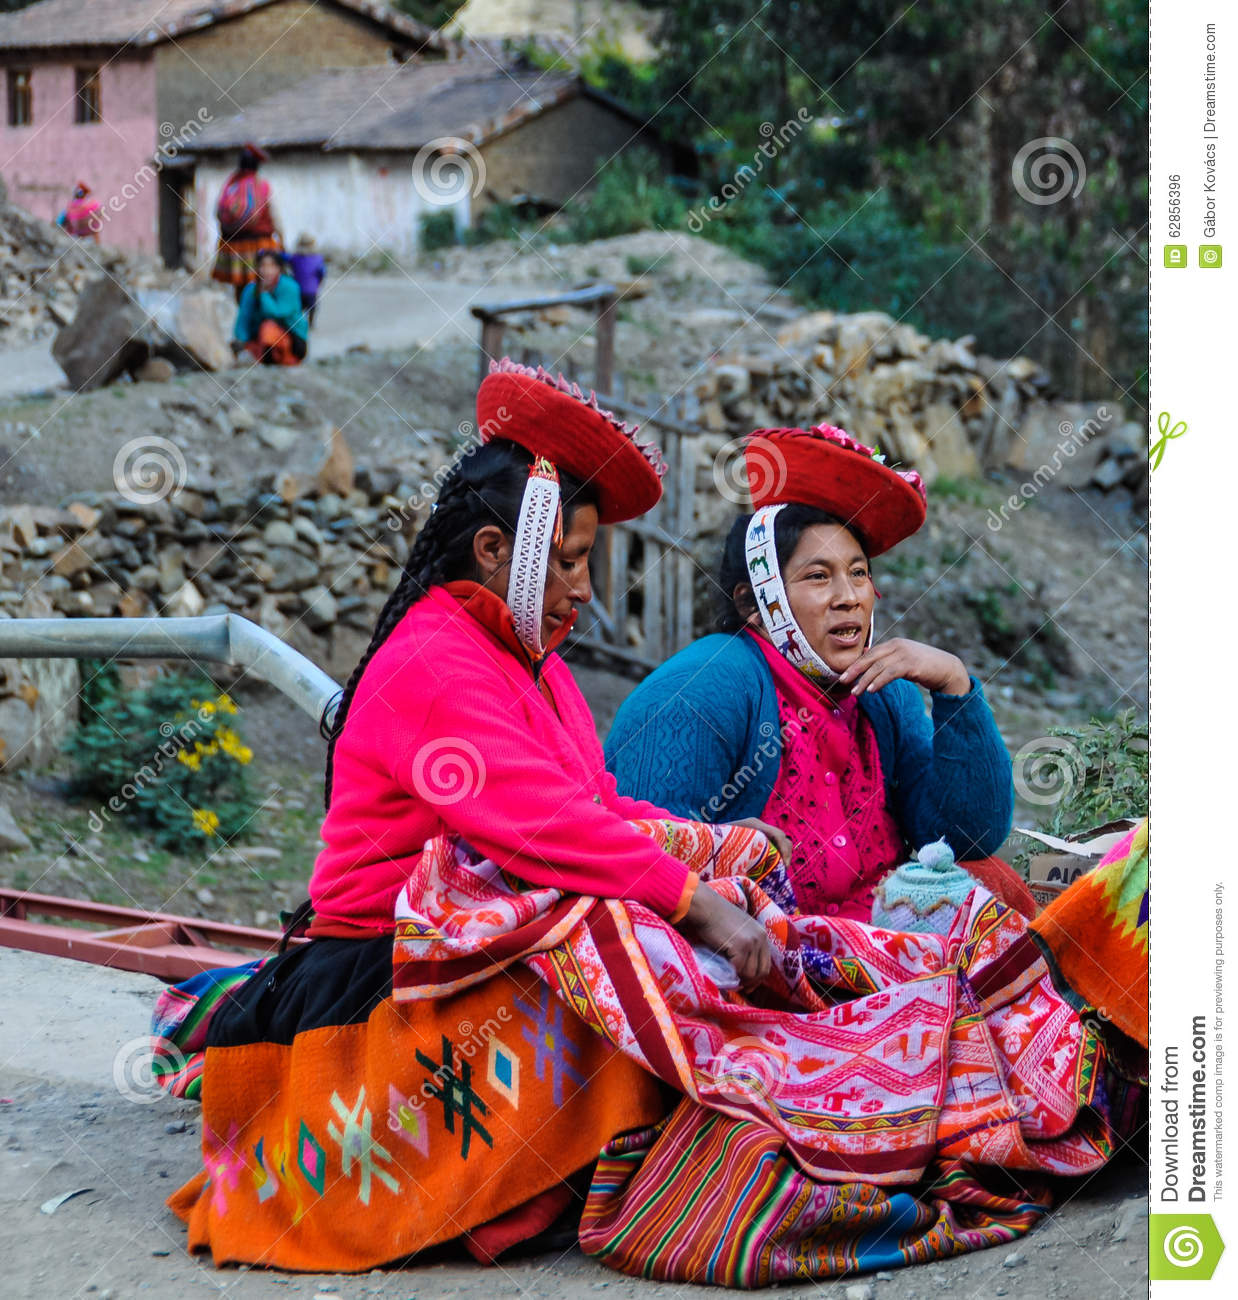 Quechua Women In Colorful Dress In A Village In The Andes, Ollan.